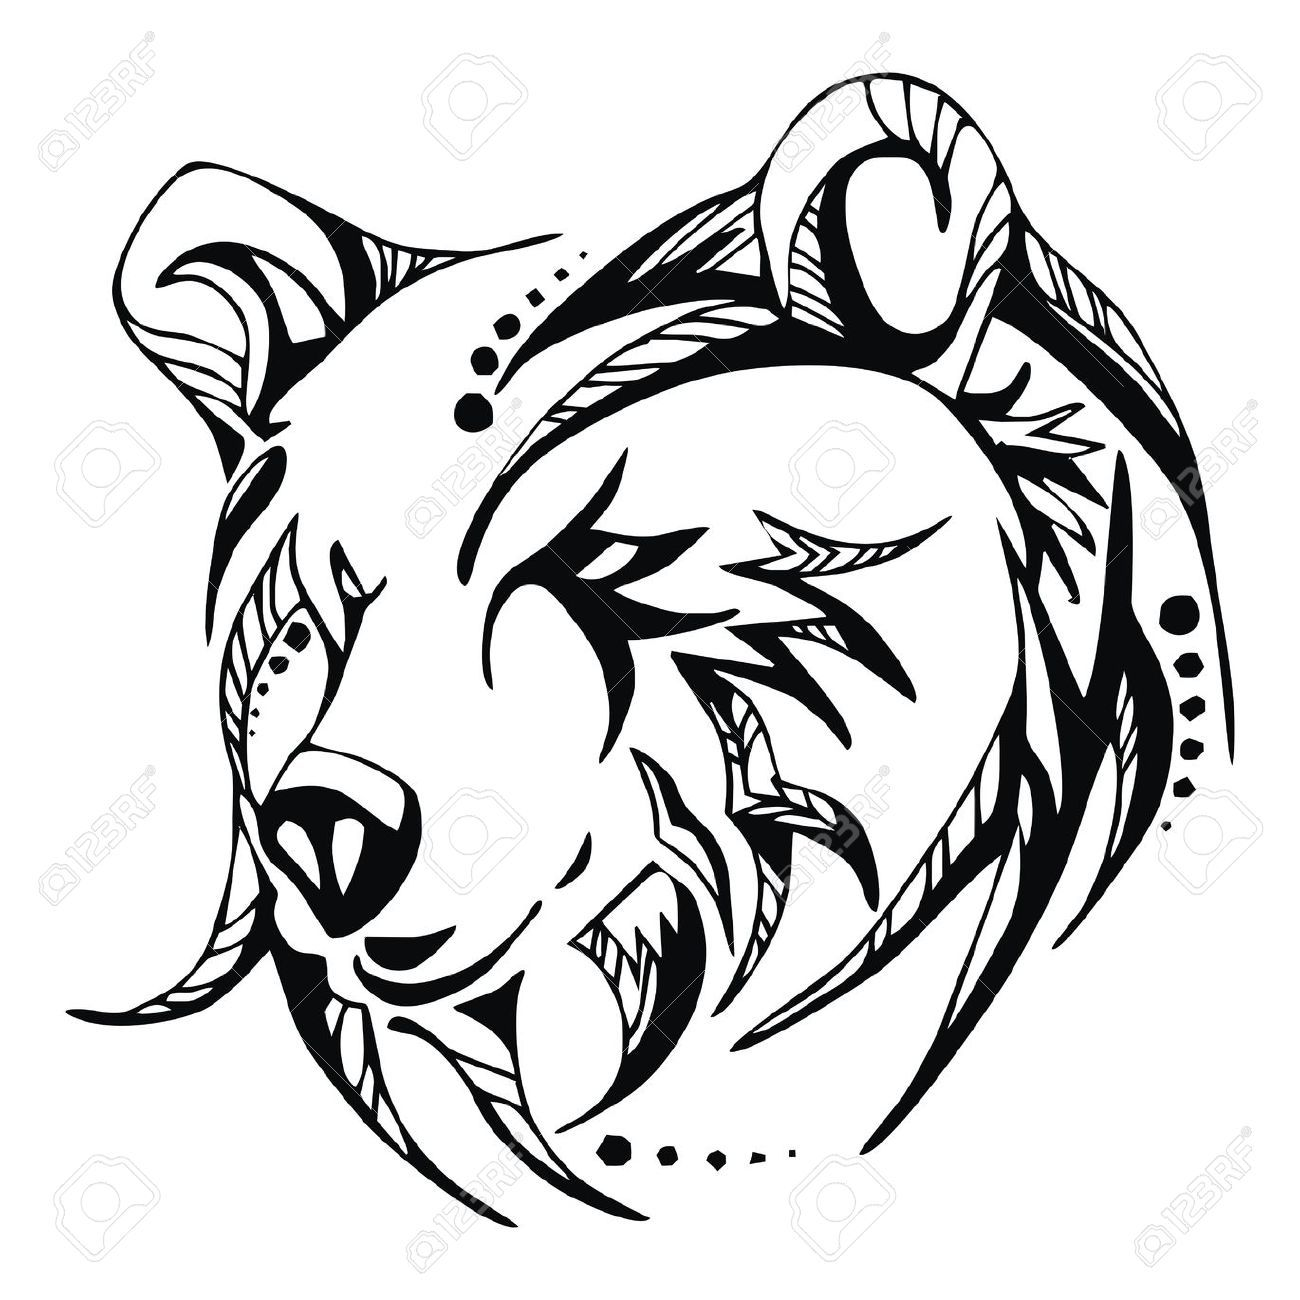 Images For > Grizzly Bear Head Outline | Tribal bear ...